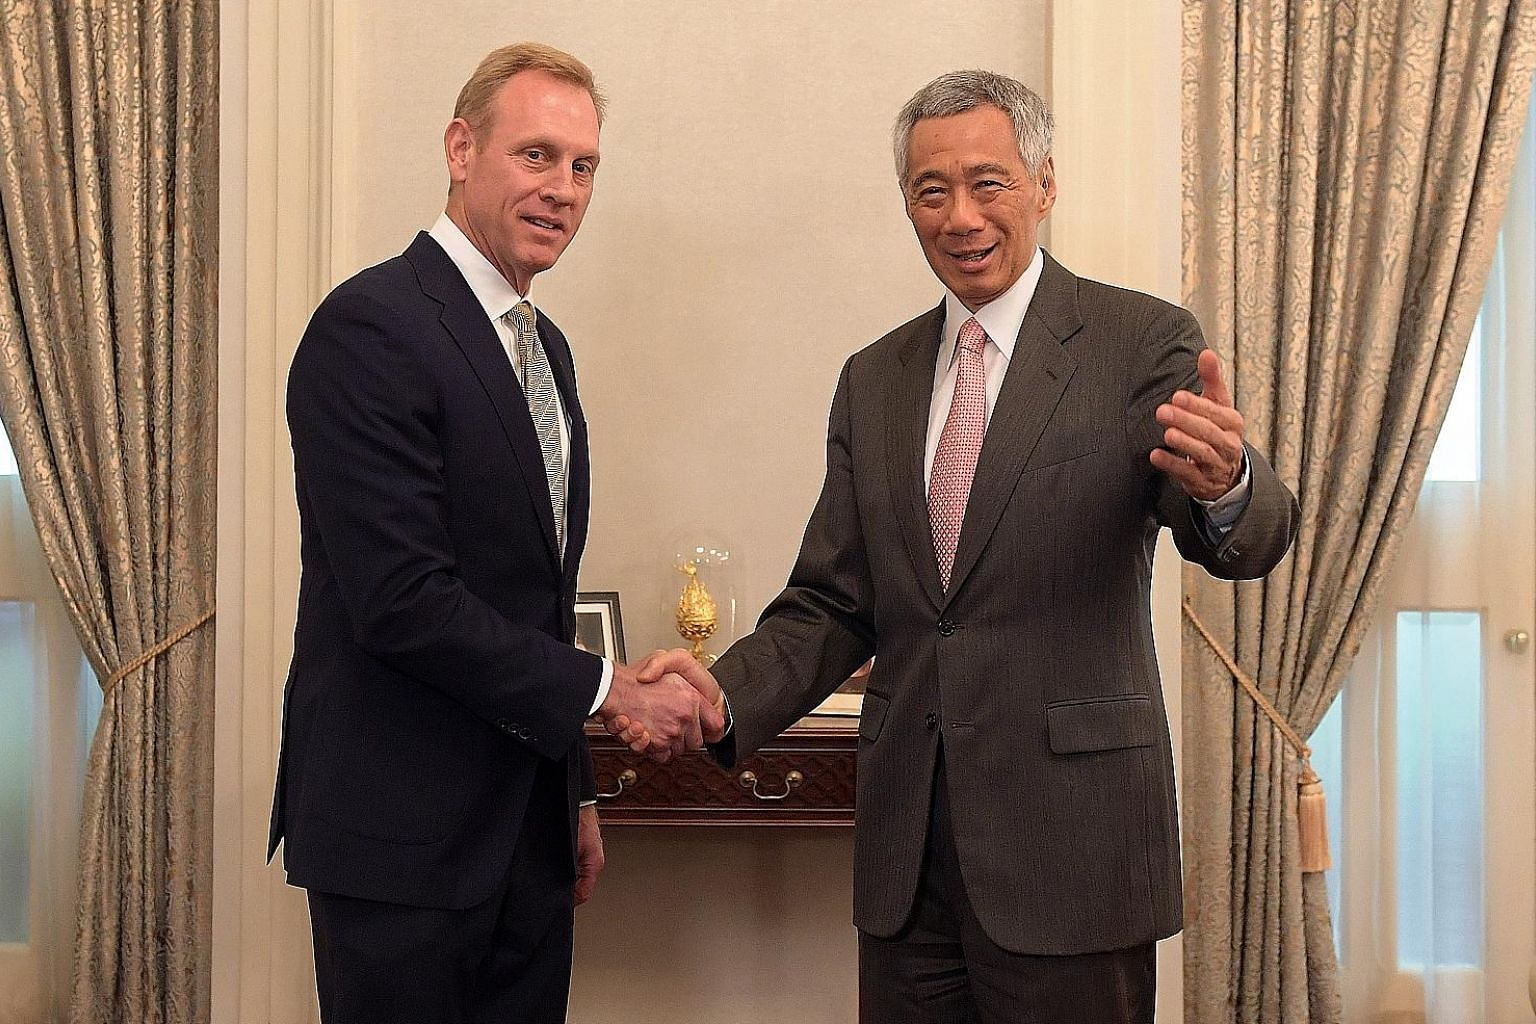 US Acting Defence Secretary Patrick Shanahan calling on Prime Minister Lee Hsien Loong at the Istana yesterday. They reaffirmed the excellent and longstanding relations between Singapore and the US. ST PHOTO: ALPHONSUS CHERN